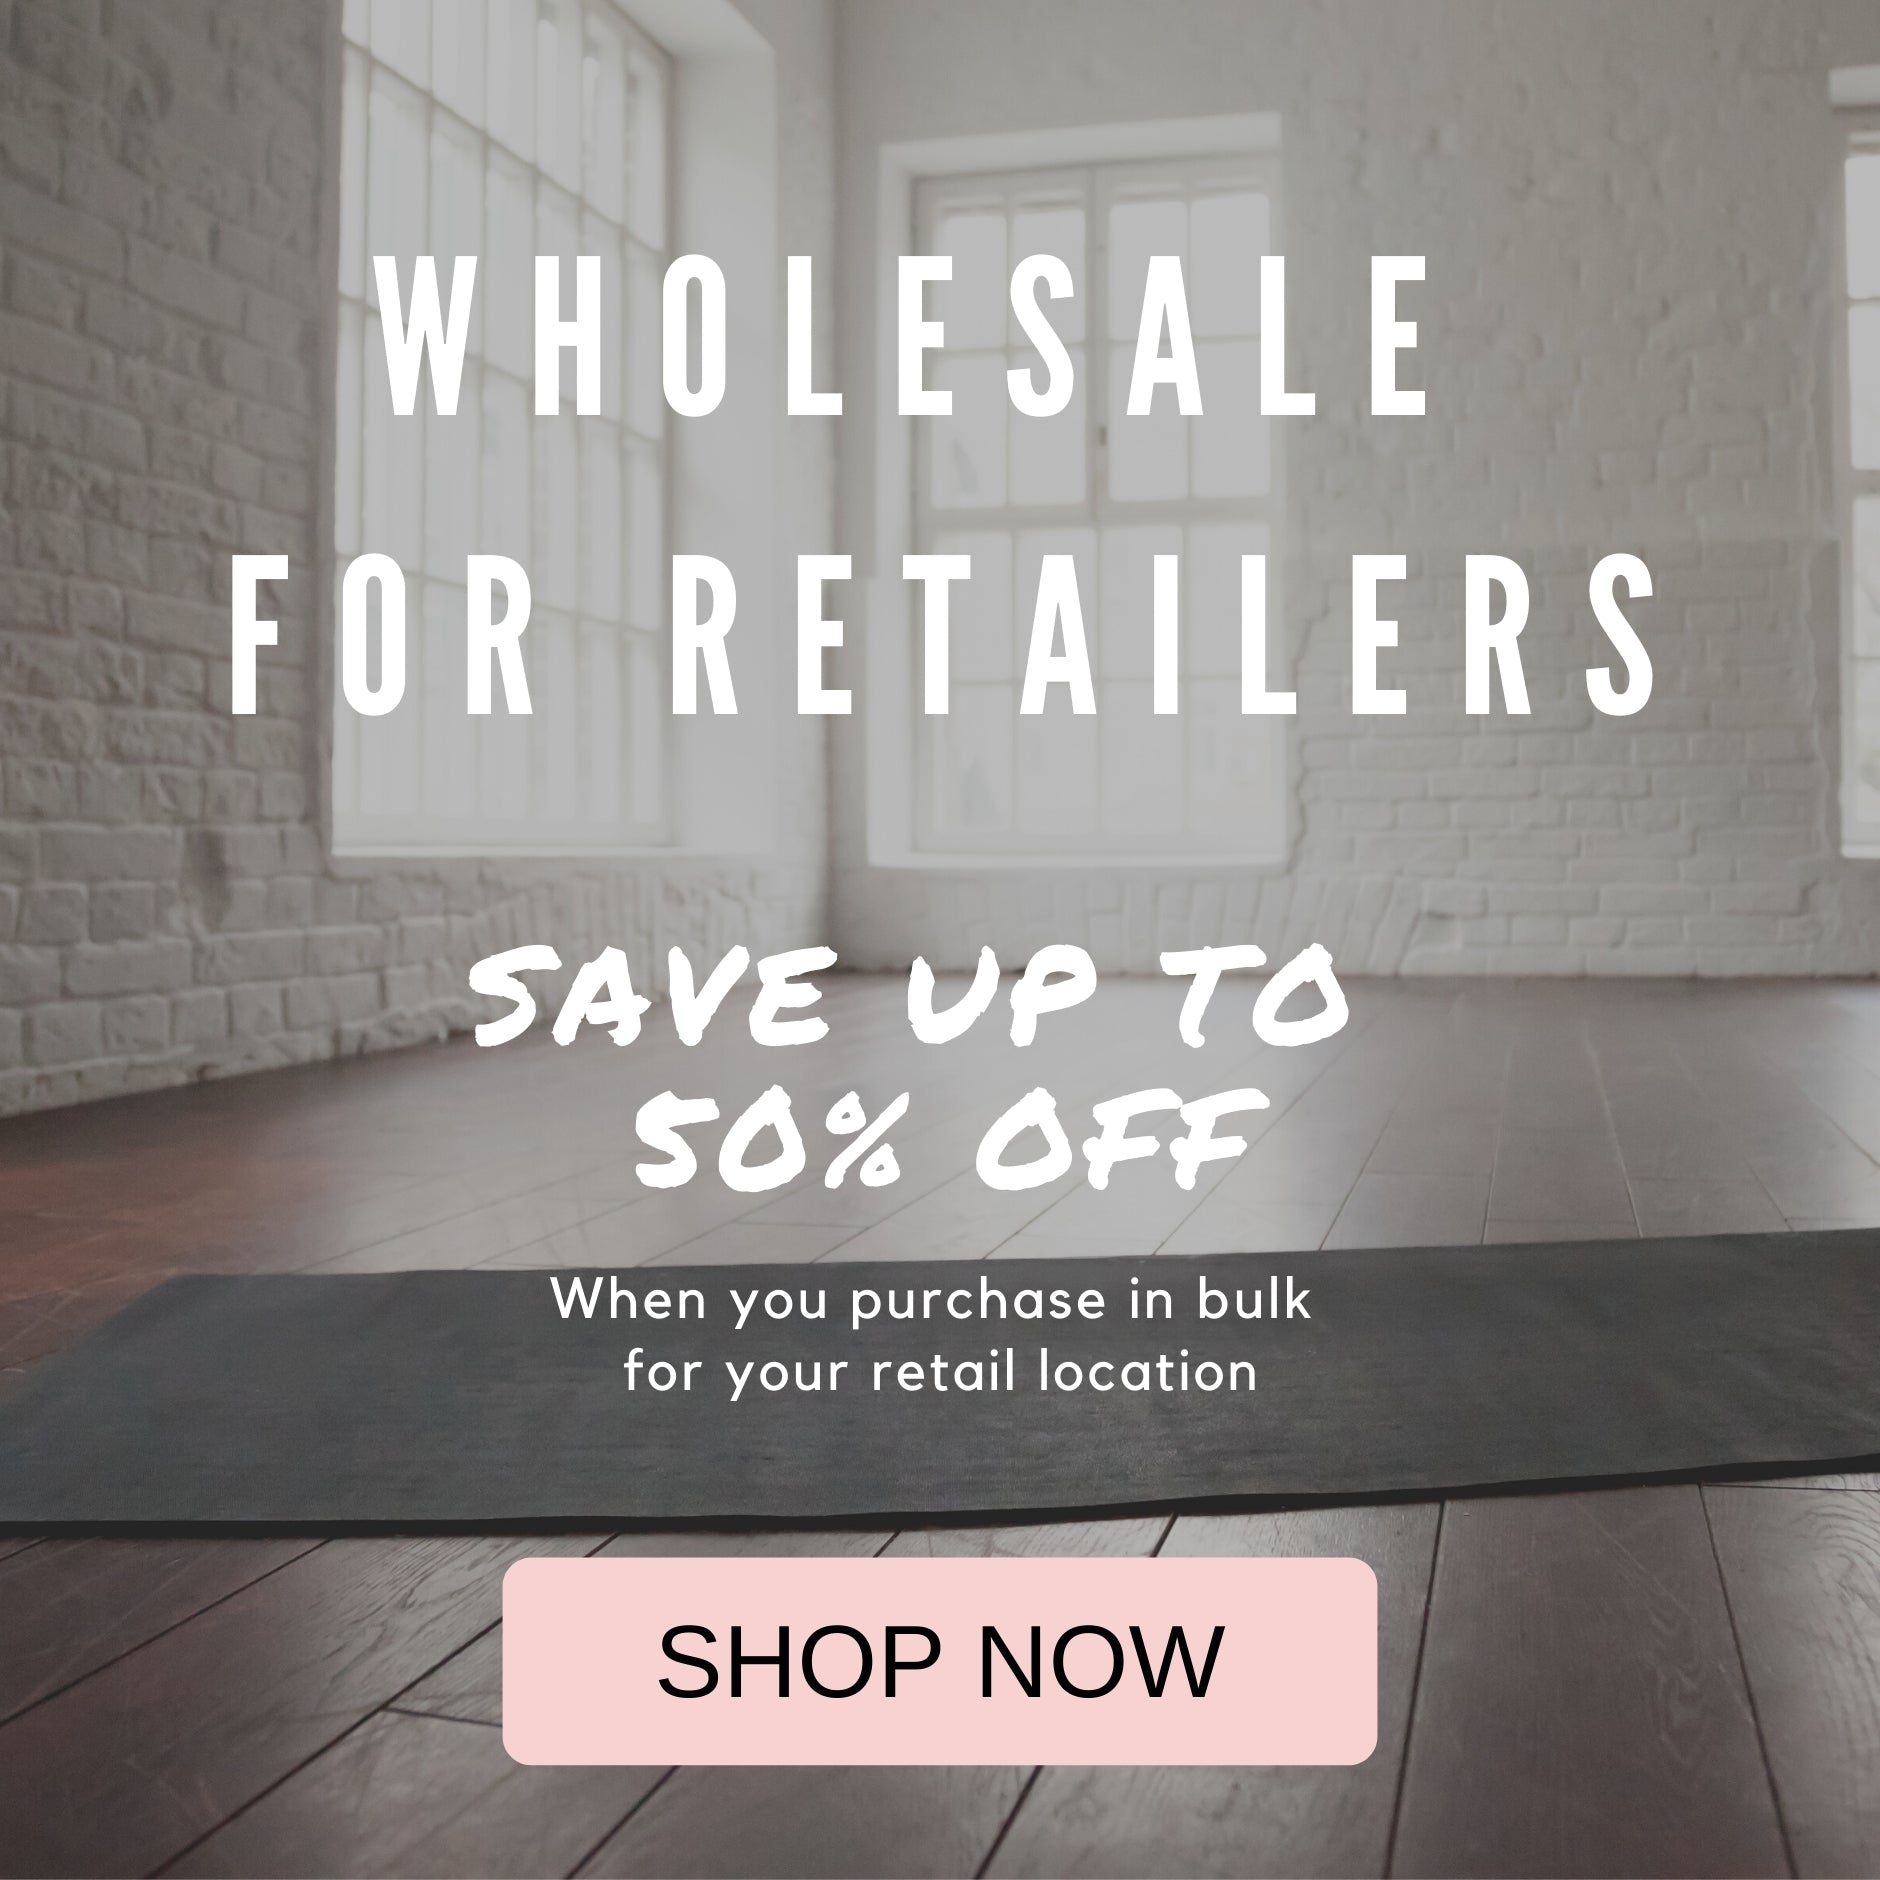 Shop PIYOGA at wholesale pricing up to 50% off with an approved retail location. Become a PIYOGA Retailer and carry PIYOGA at your yoga studio, boutique, spa, clinic & more!